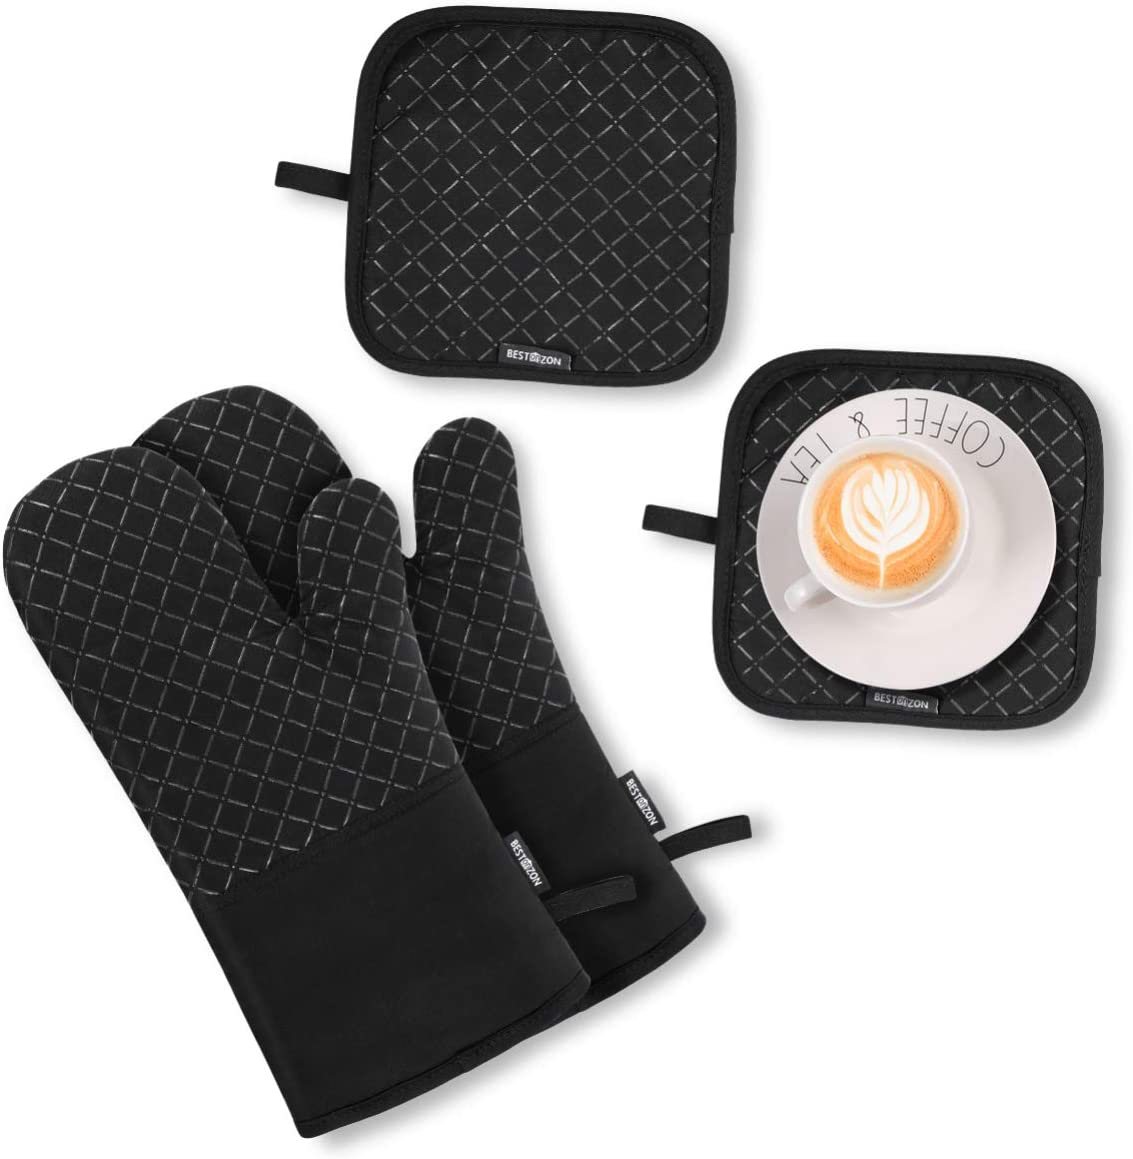 Heat Resistant Oven Mitts and Pot Holders, Soft Cotton Lining with Non-Slip Surface for Safe Baking Grilling, 4PCS (Black)